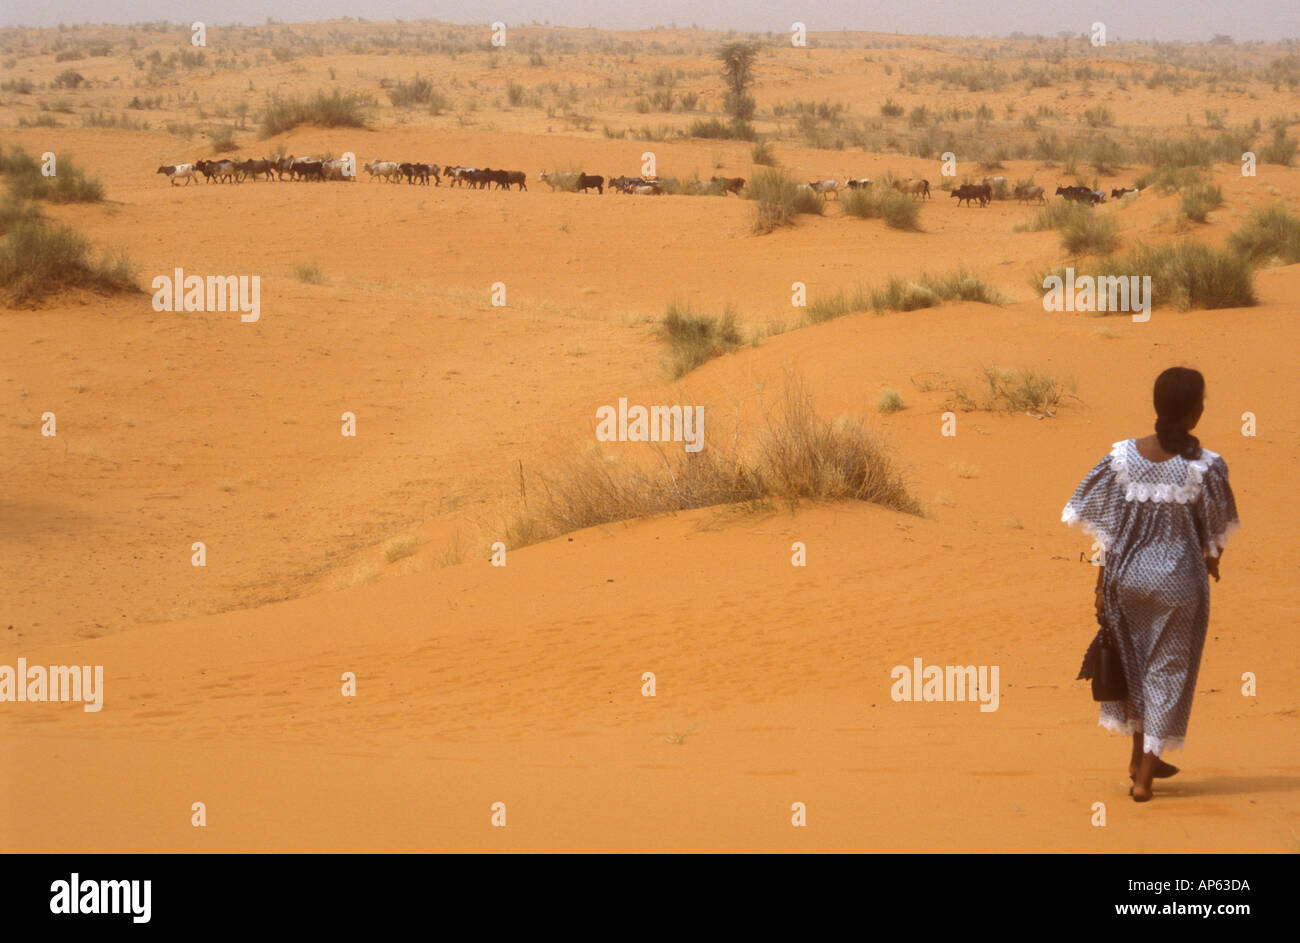 Woman Walking In Sahara Desert Burkina Faso West Africa